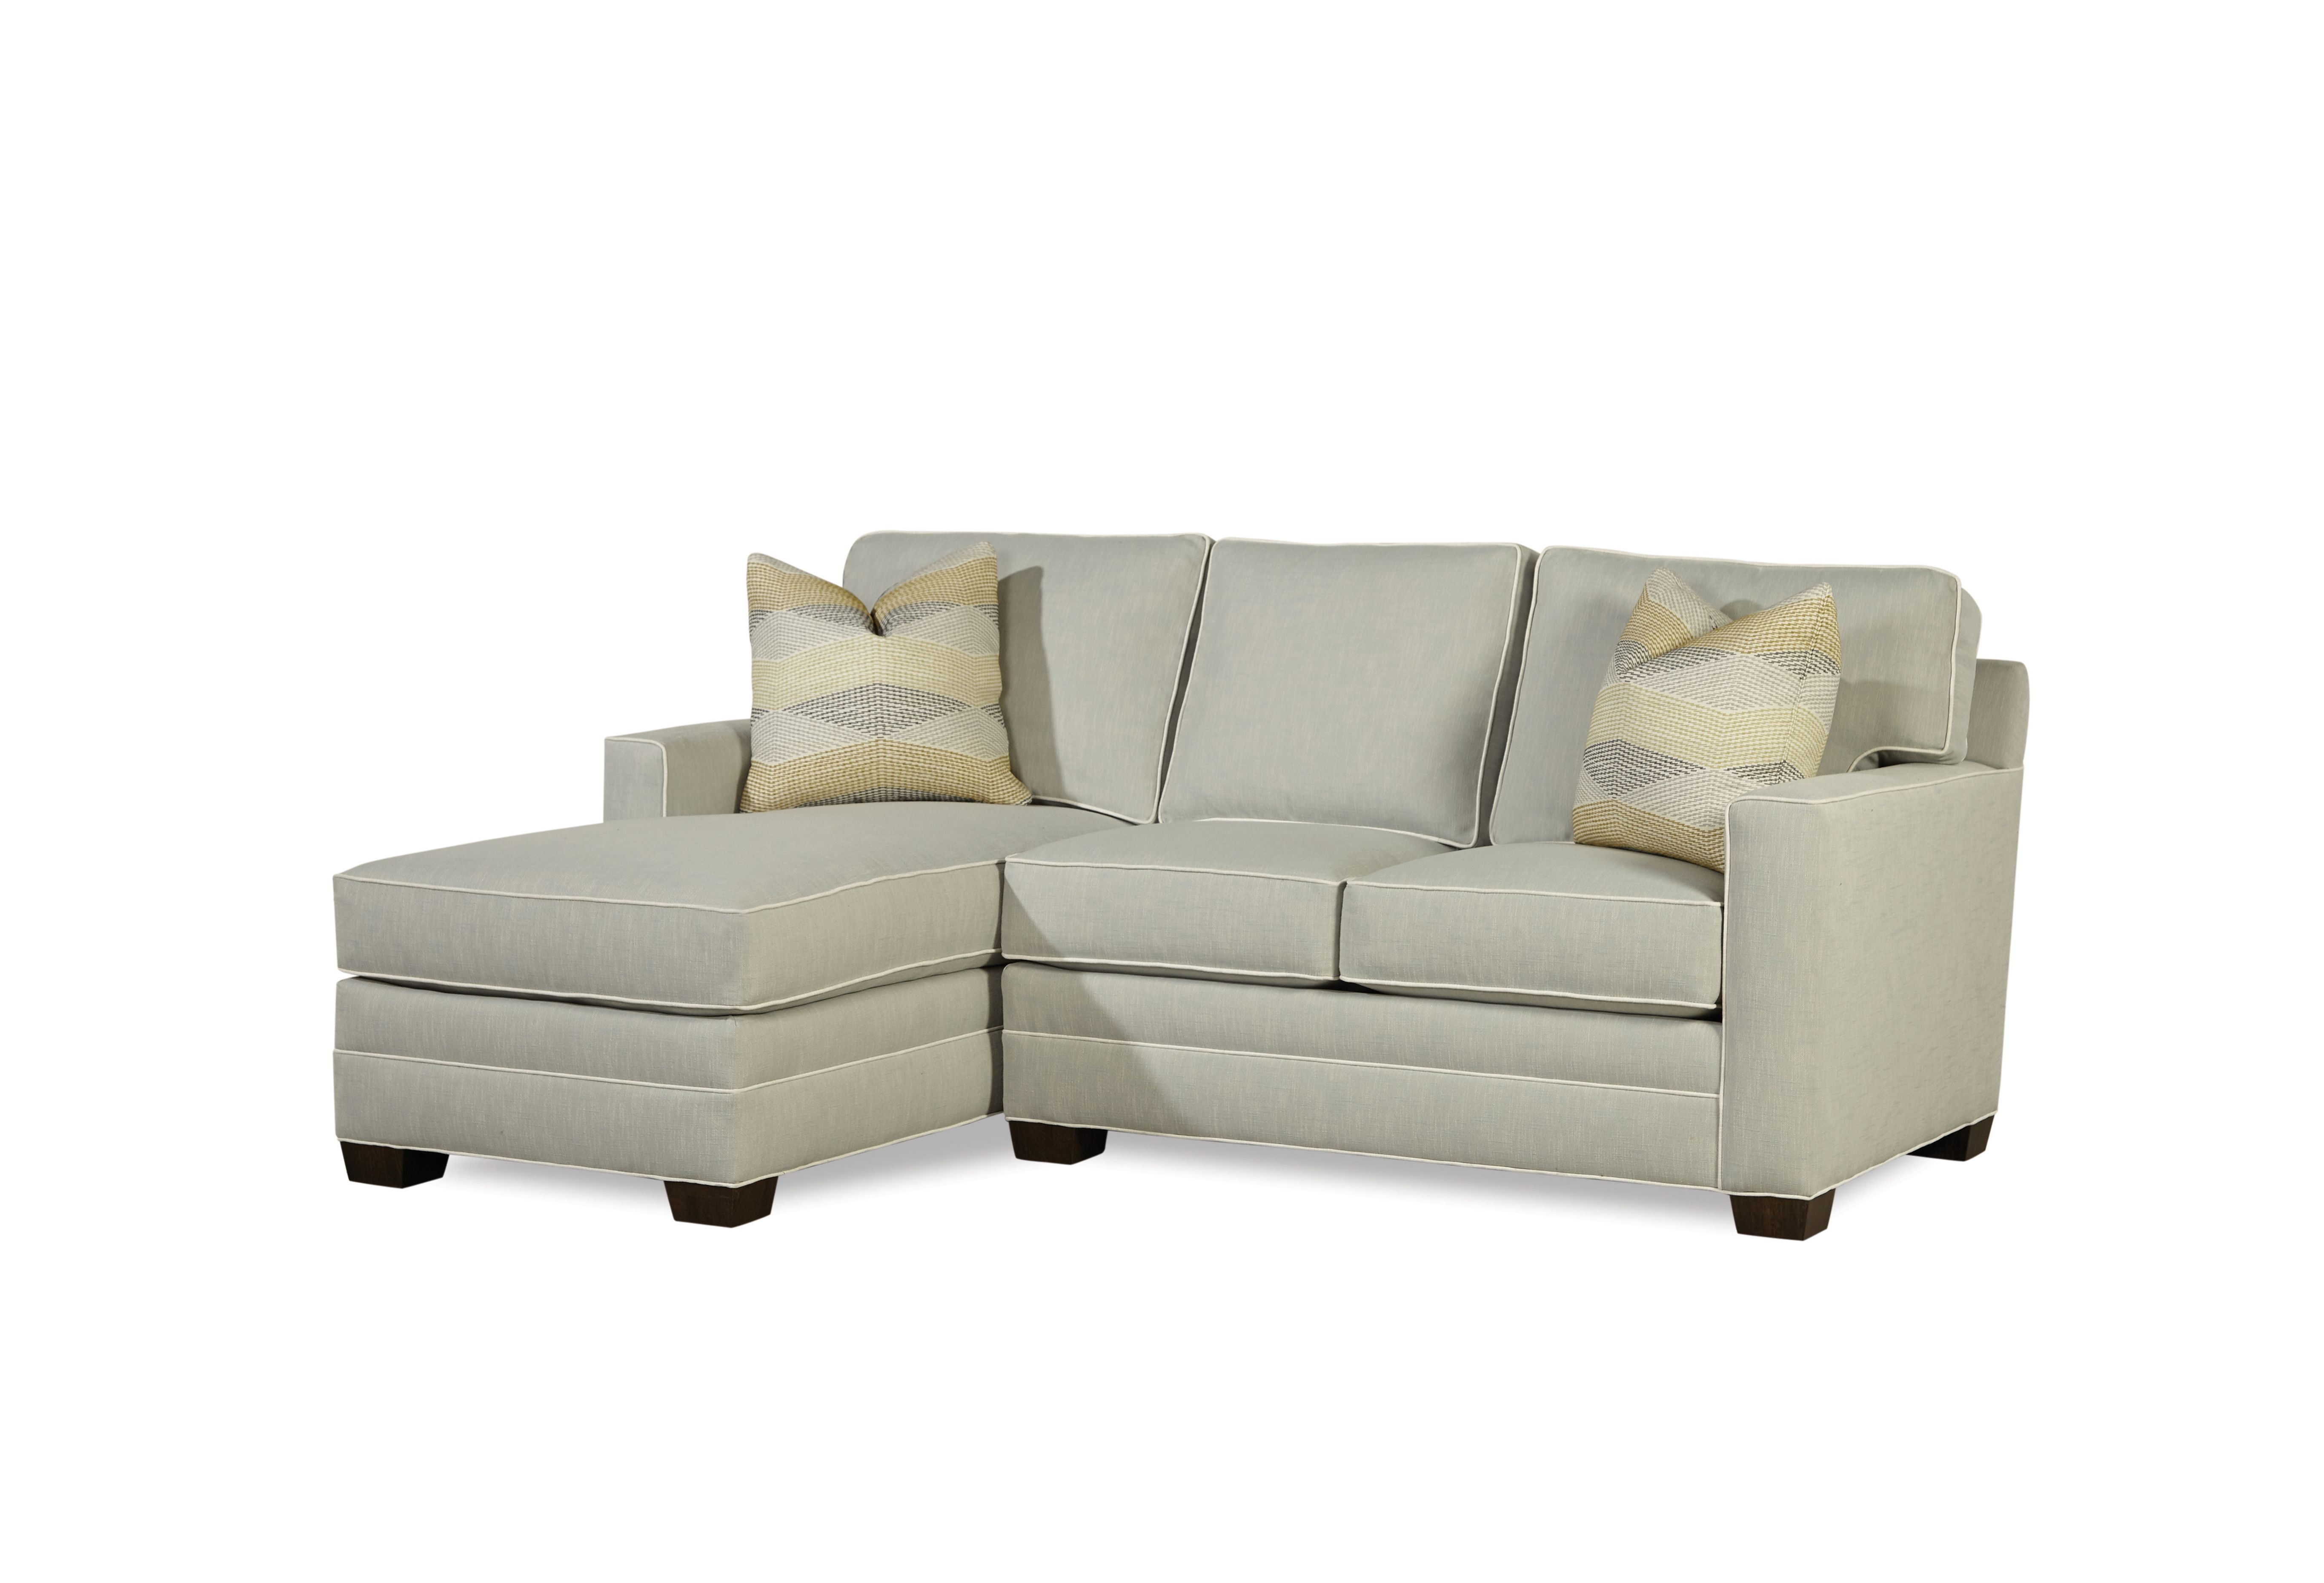 Huntington House 2053 Sectional shown in Crypton Home fabric #prettysmart  sc 1 st  Pinterest : crypton sectional sofa - Sectionals, Sofas & Couches